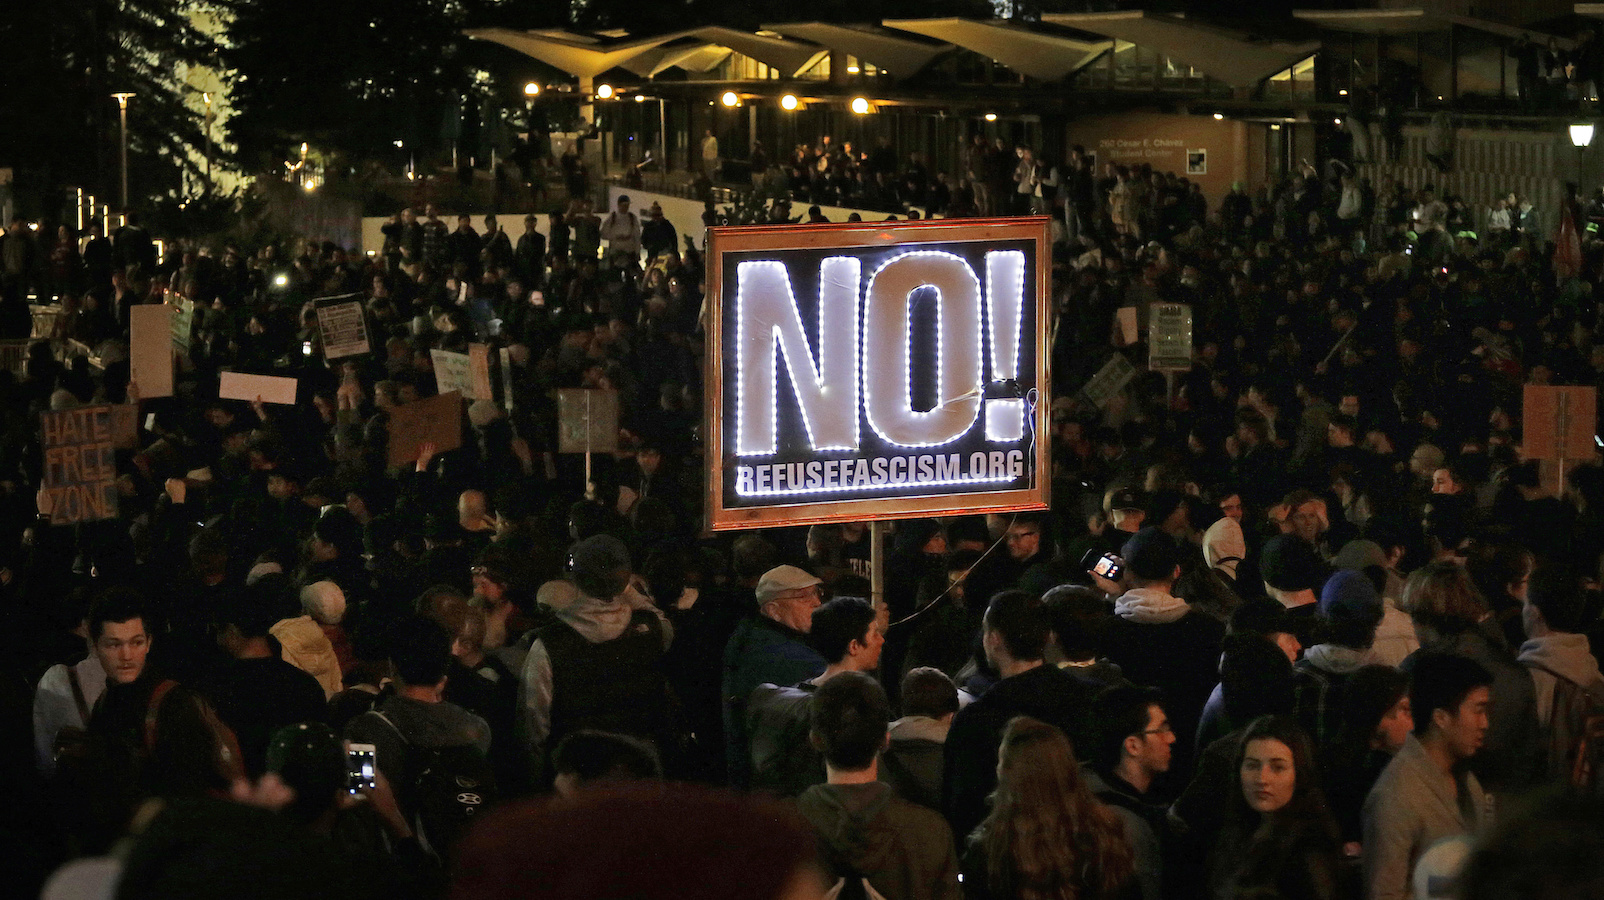 Protestors against a scheduled speaking appearance by polarizing Breitbart News editor Milo Yiannopoulos fill Sproul Plaza on the University of California at Berkeley campus on Wednesday, Feb. 1, 2017, in Berkeley, Calif. The event was canceled out of safety concerns after protesters hurled smoke bombs, broke windows and started a bonfire. (AP Photo/Ben Margot)